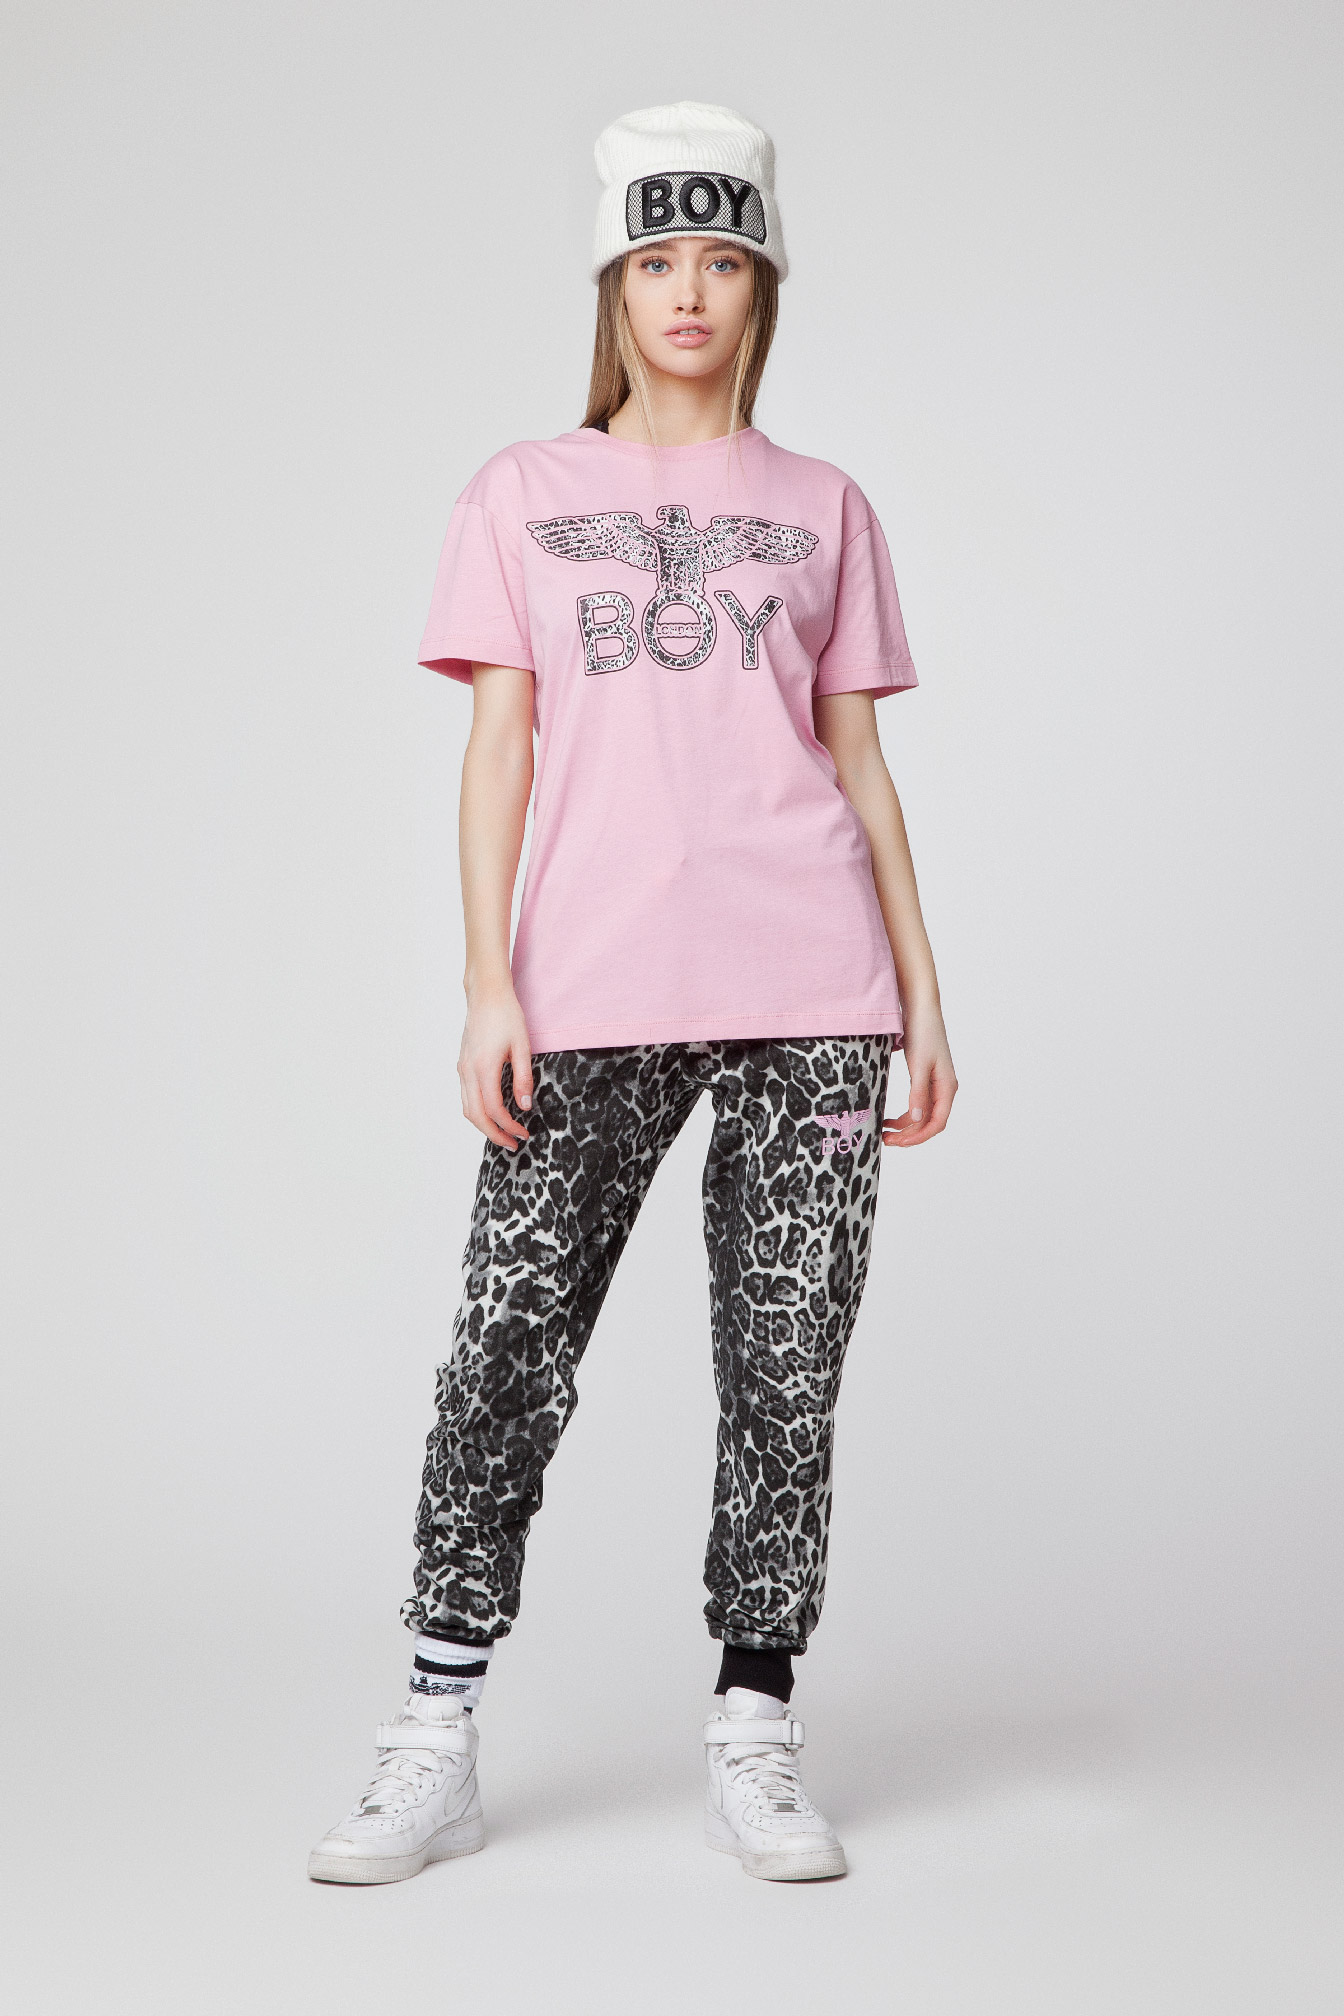 T-SHIRT - BLD2146 - BOY LONDON